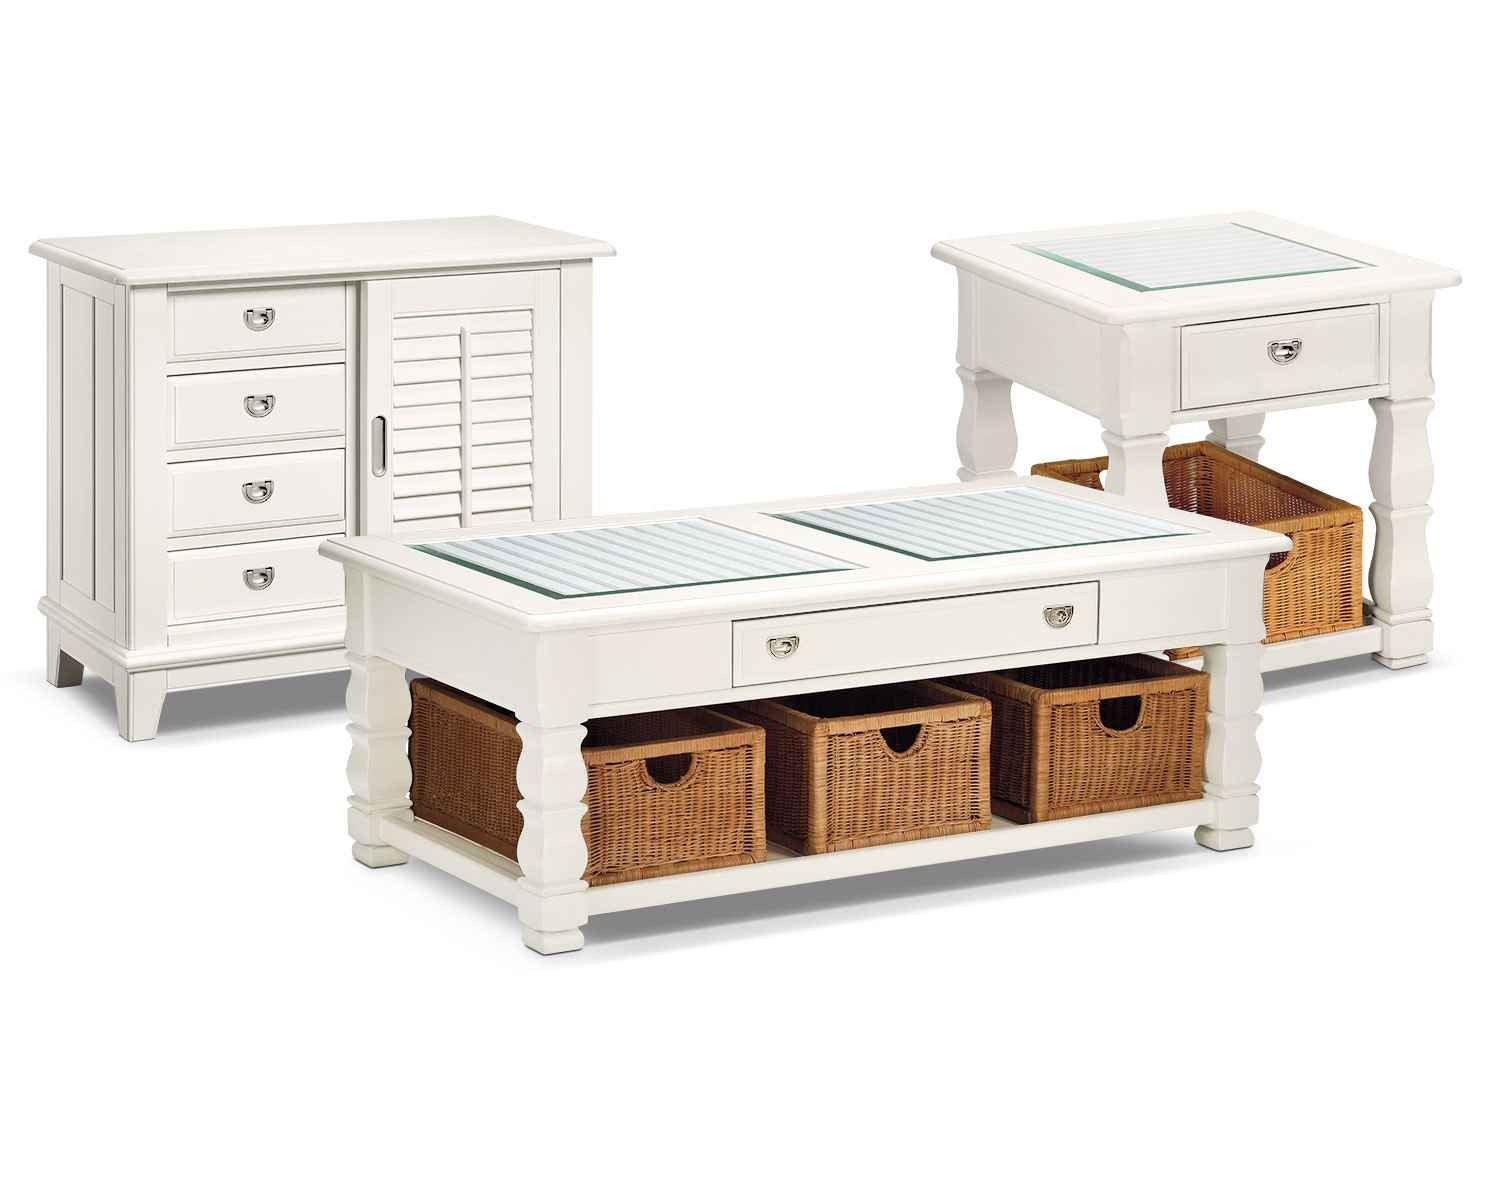 The Plantation Cove Collection - White